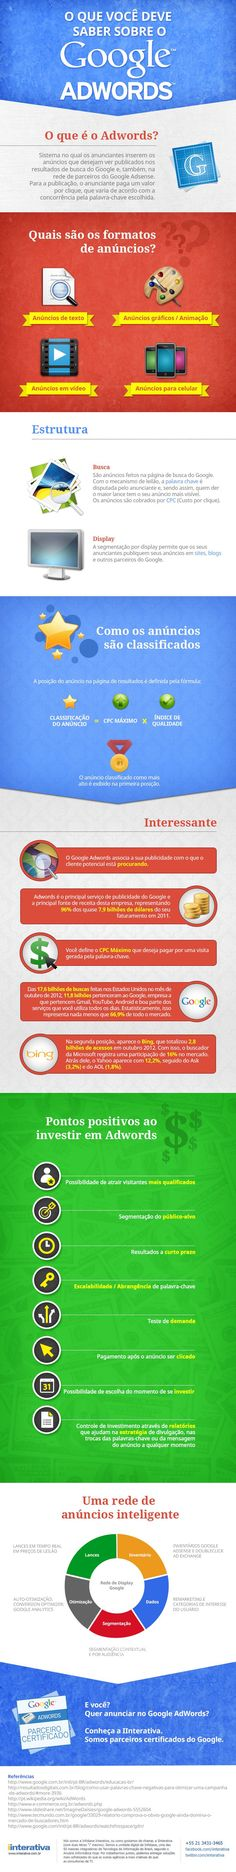 Descubra como funciona o Google Adwords. #SocialMedia #Adwords #infographic Clique aqui http://www.estrategiadigital.pt/ e visite agora o Blog Estratégia Digital para ver mais Táticas e Ferramentas de Marketing Digital para Internet!